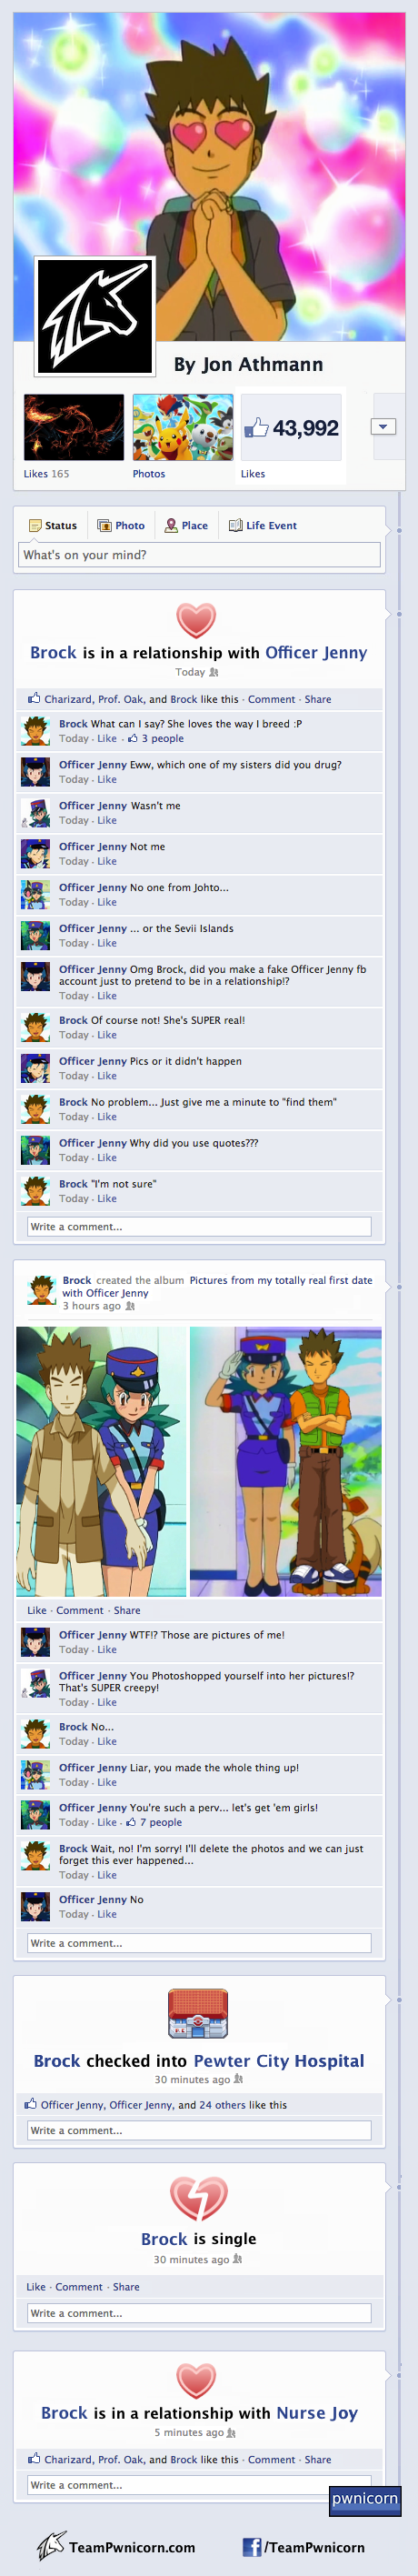 http://www.teampwnicorn.com/wp-content/uploads/2013/05/Brock-and-Officer-Jenny-become-Facebook-Official.png